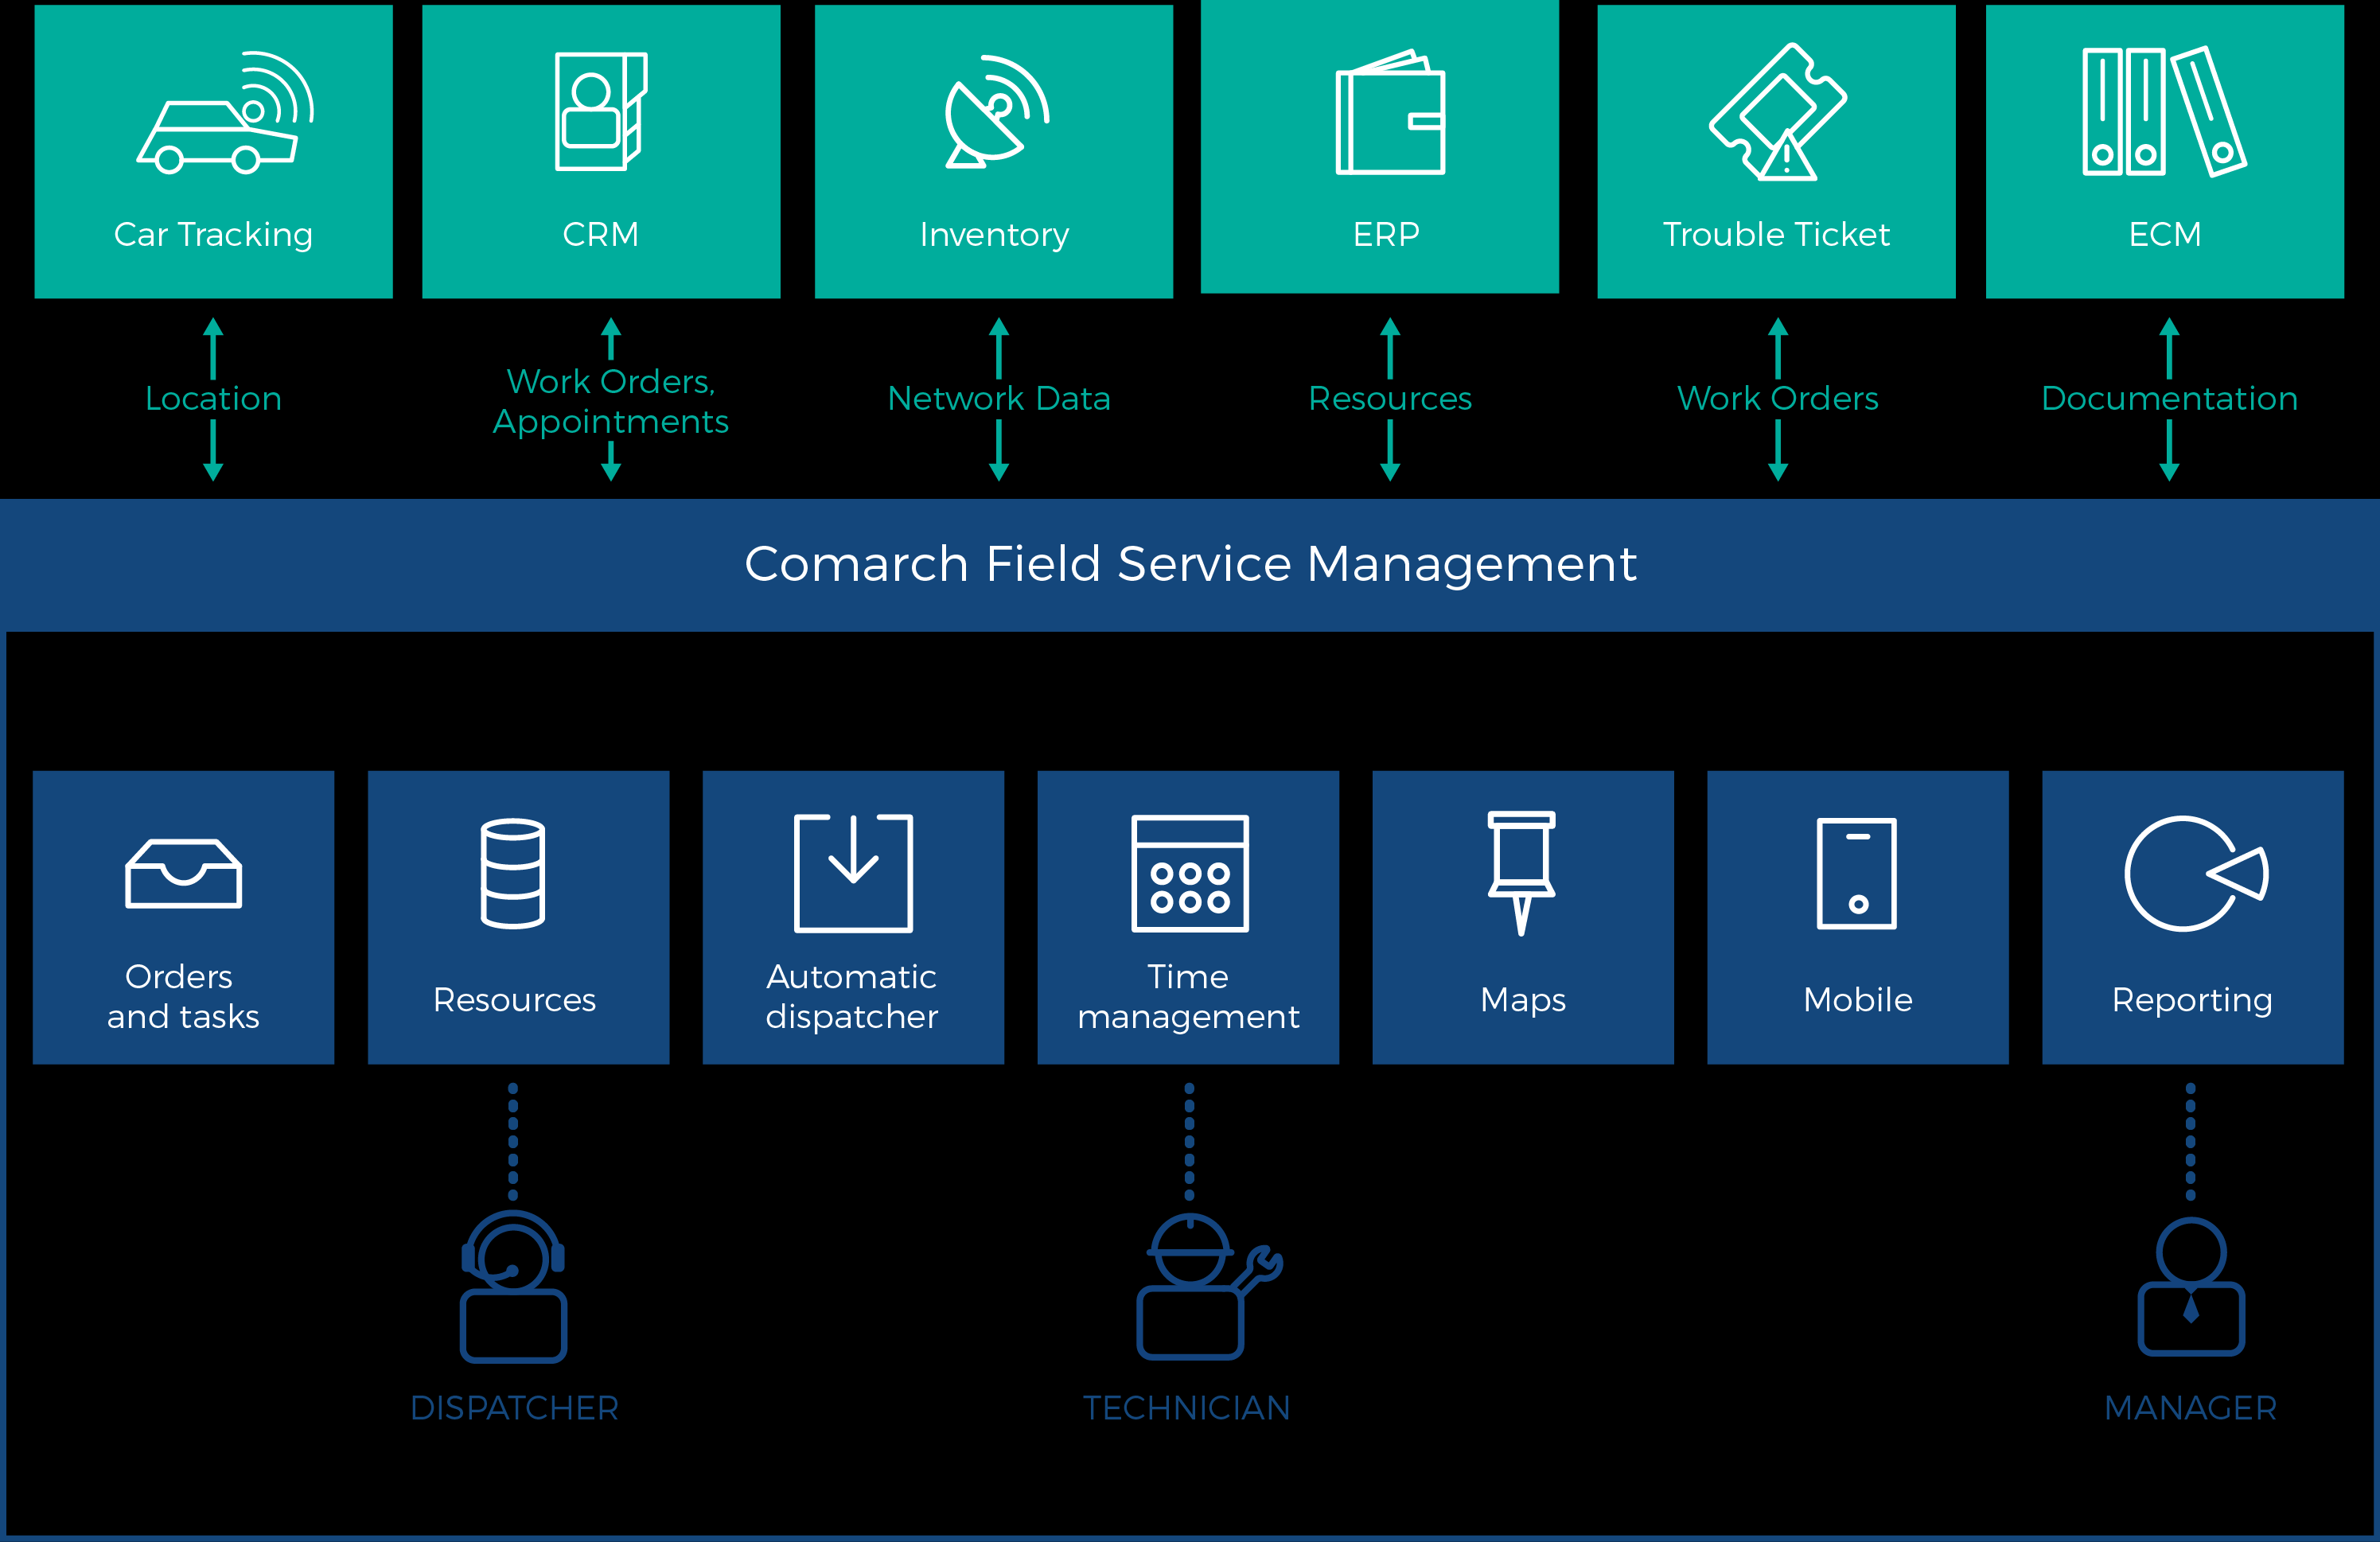 Comarch Field Service Management